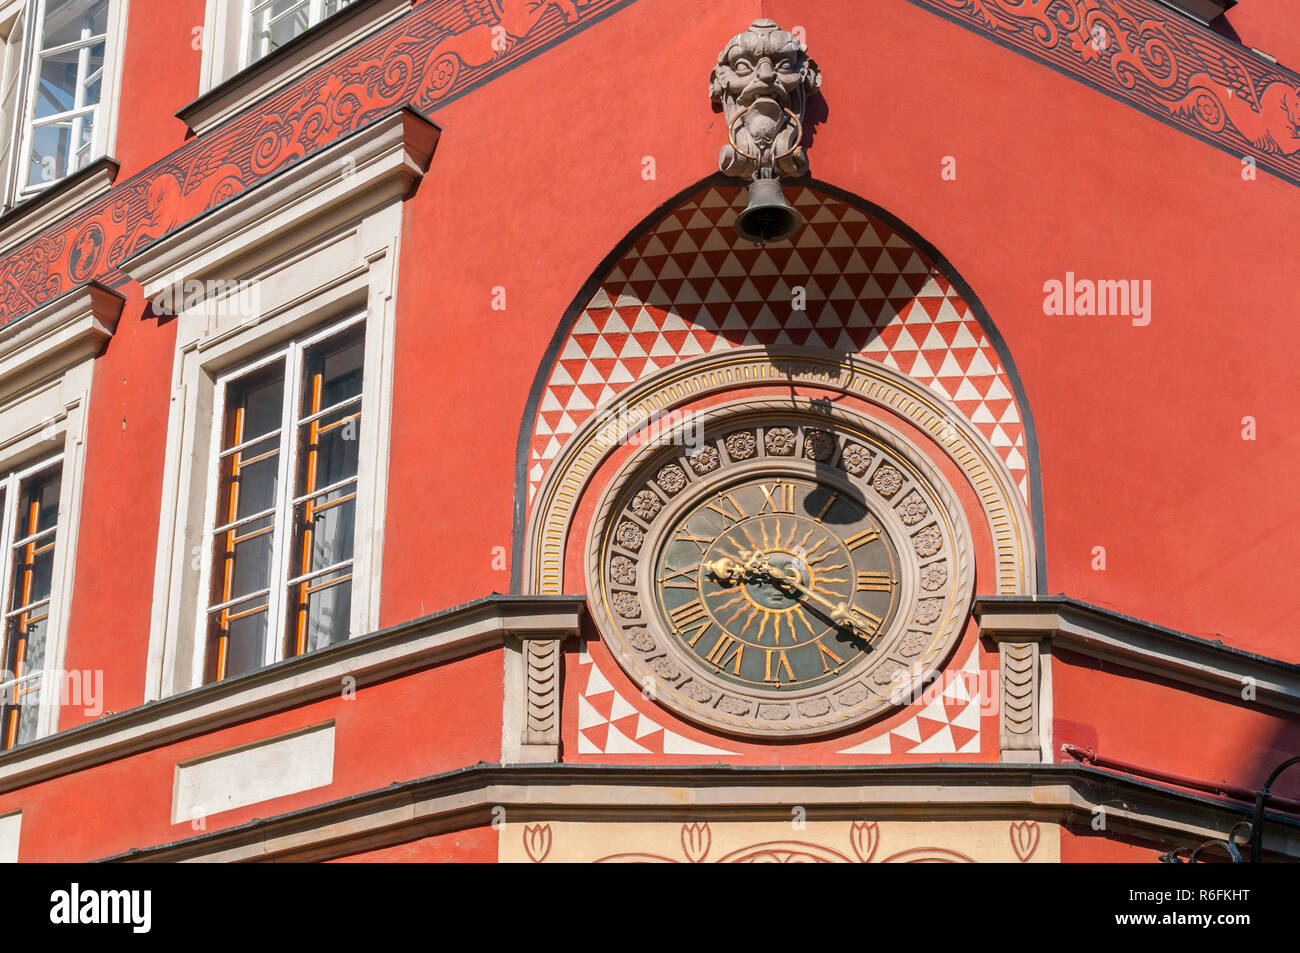 Old Clock On The Wall At The Market Square In The Old Town Of Warsaw, Poland - Stock Image